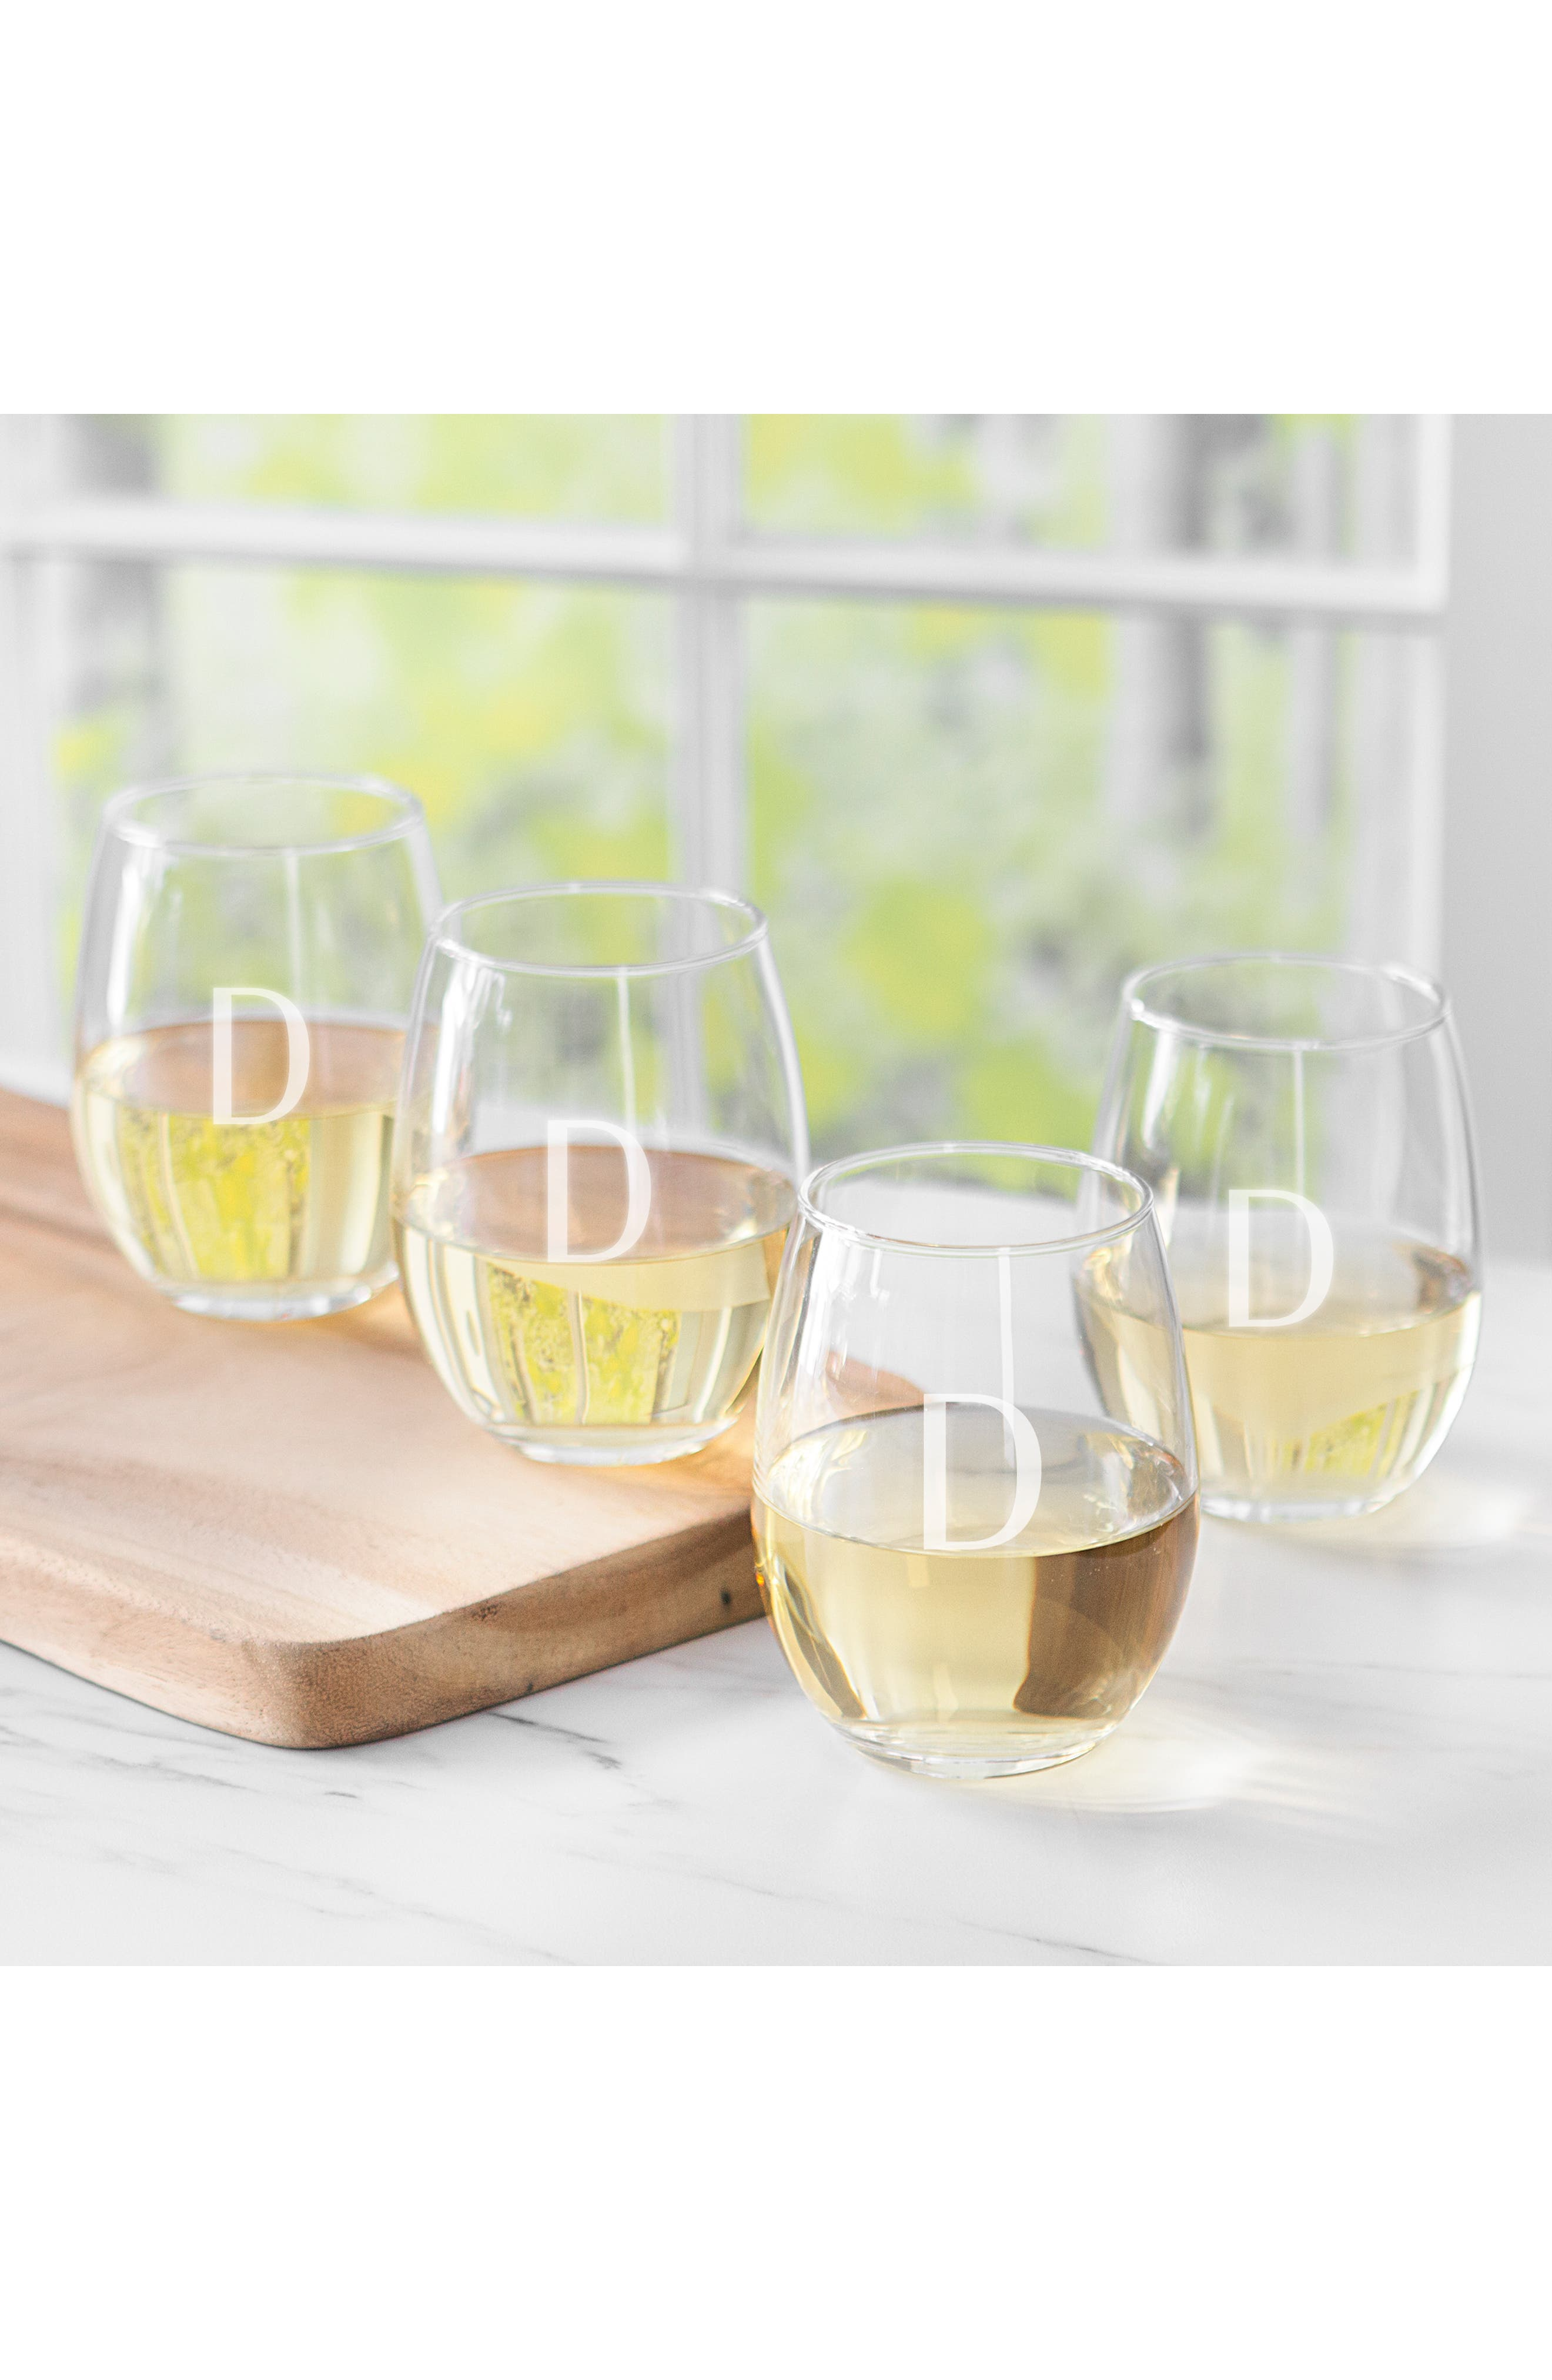 Estate Collection Set of 4 Monogram Stemless Wine Glasses,                             Alternate thumbnail 5, color,                             BLANK